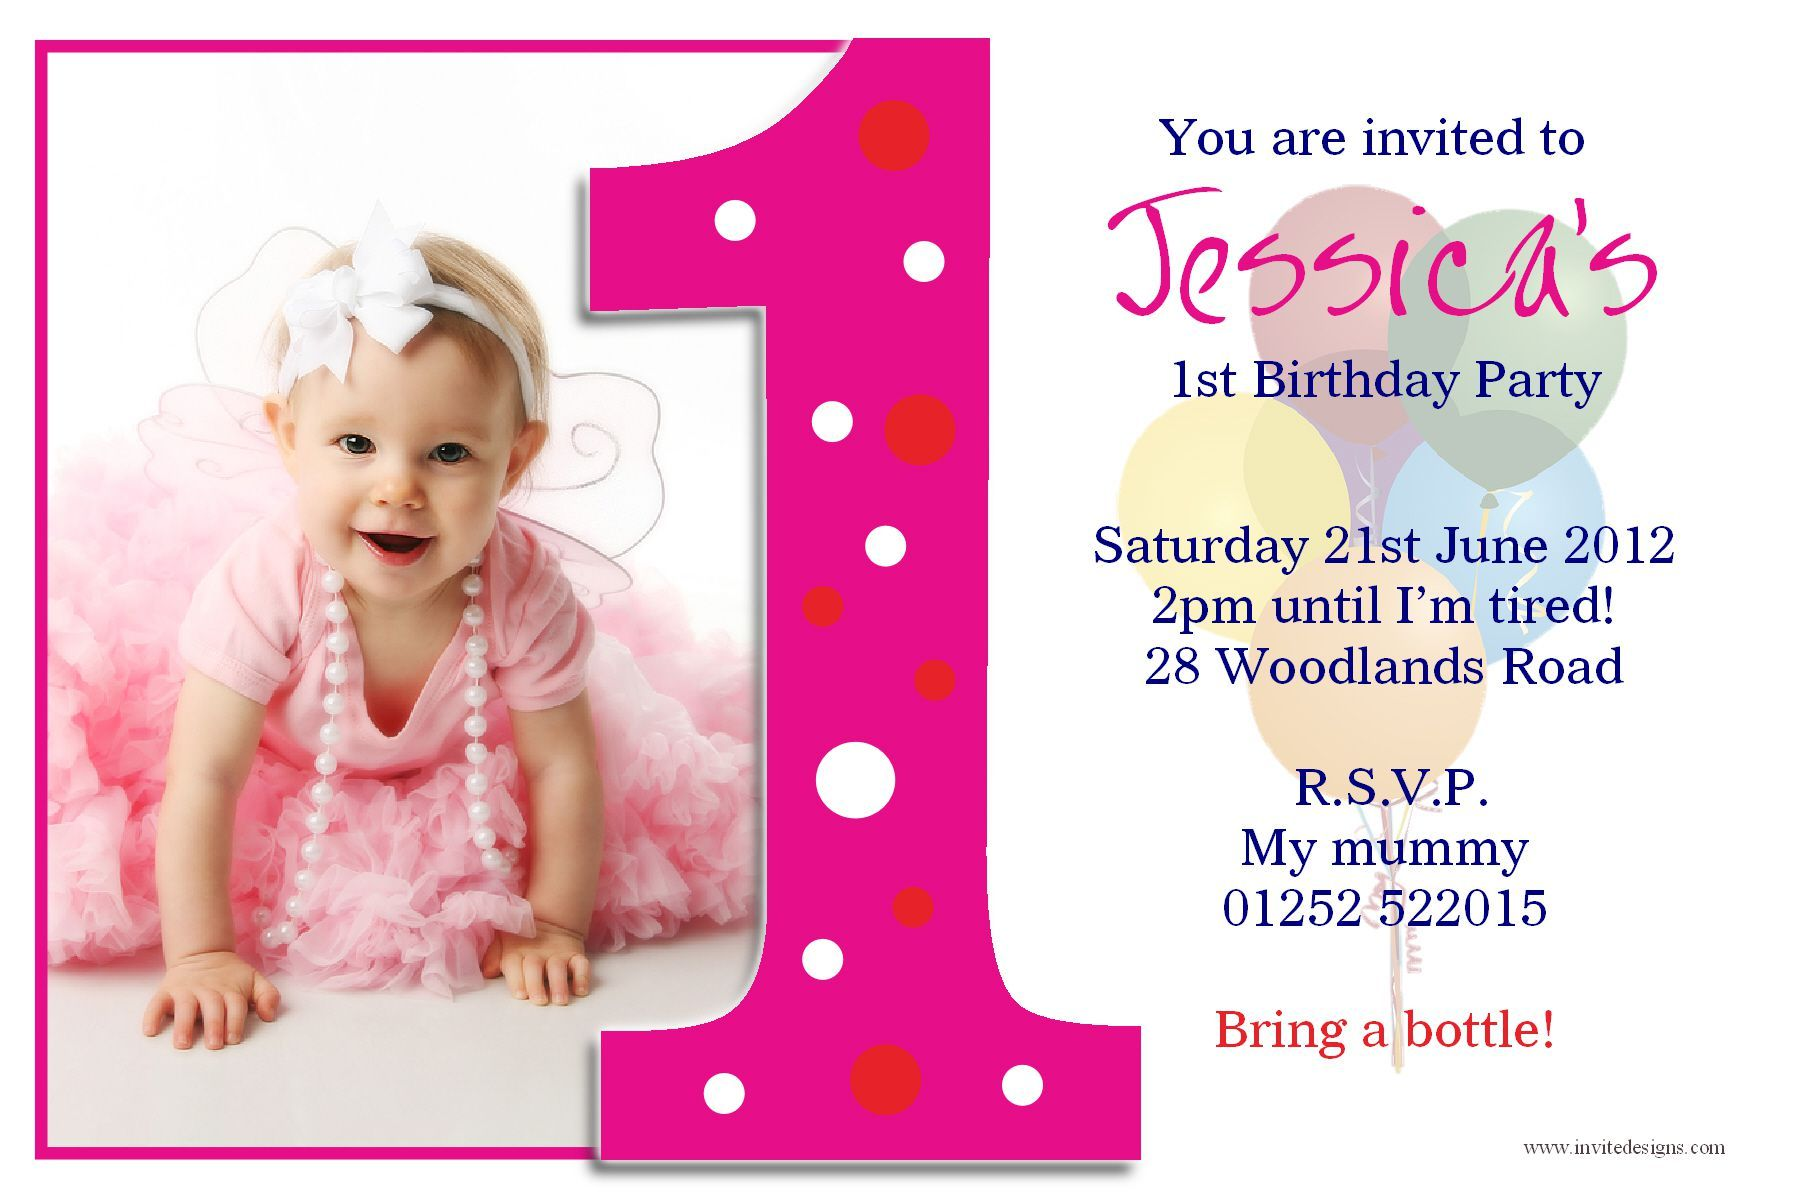 birthday party : First birthday invitations Card